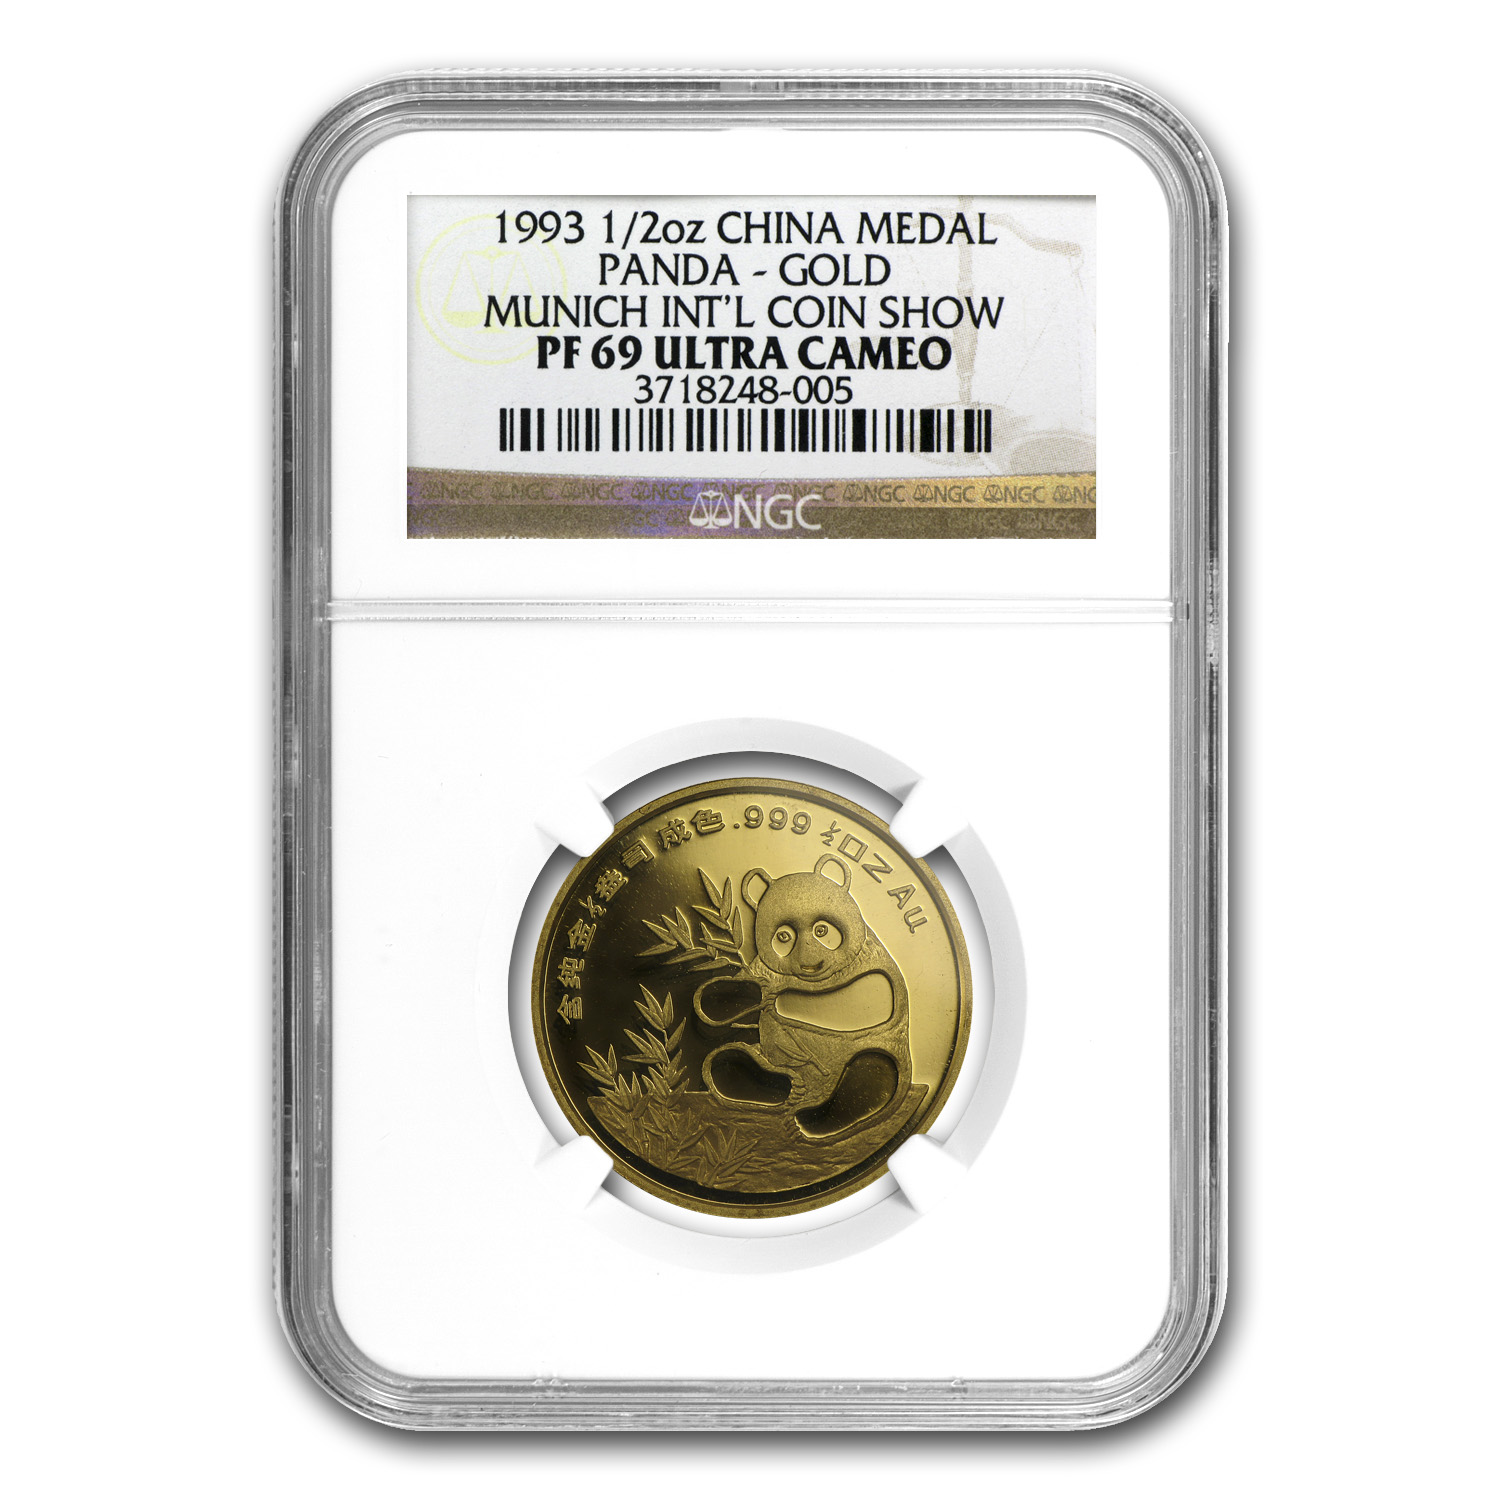 1993 1/2 oz Gold Chinese Panda PF-69 NGC (Munich Coin Fair Medal)